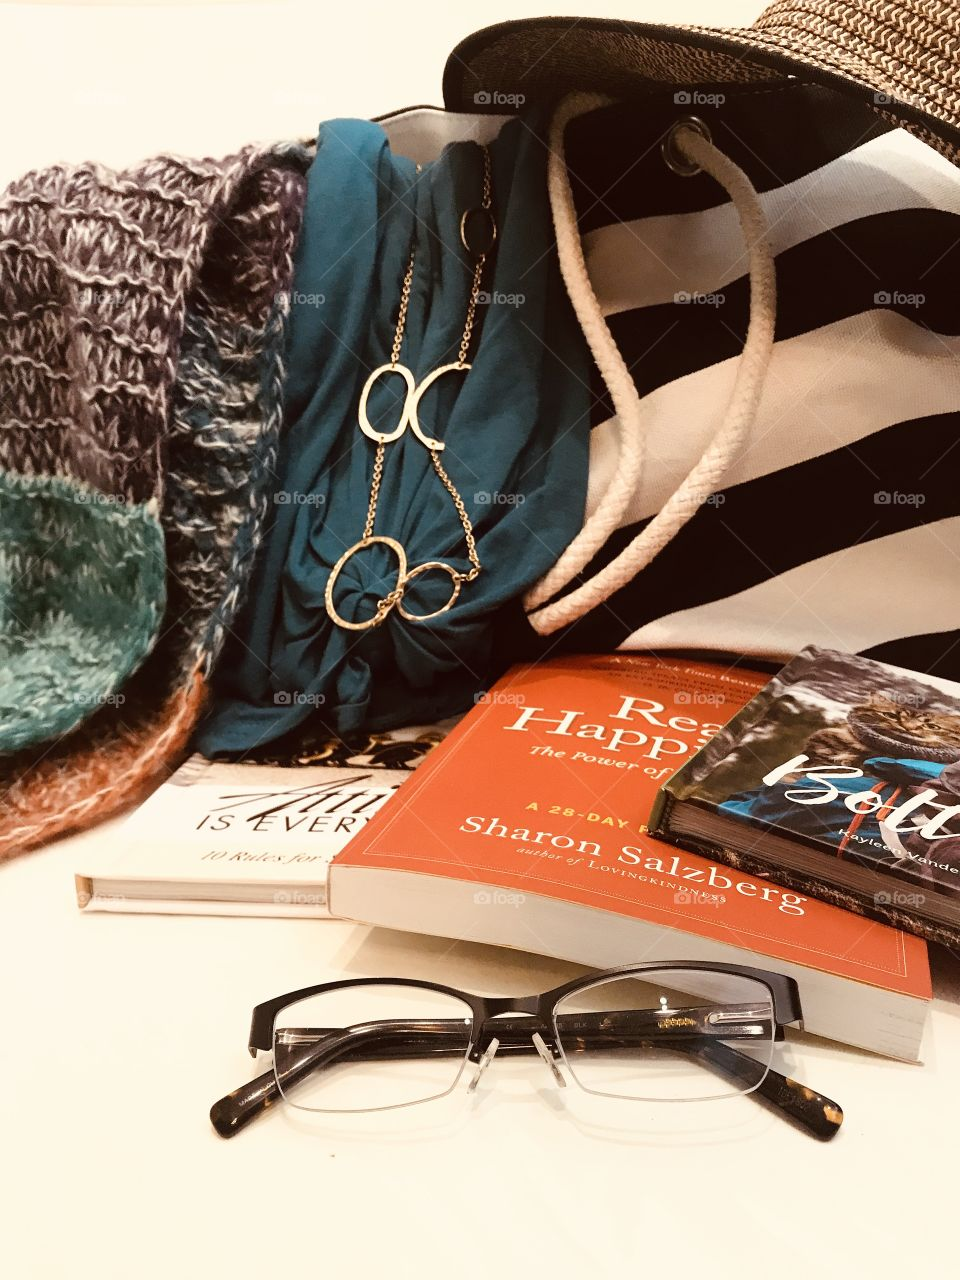 Let's get ready to travel with best feel good reads, summer dress, sun hat, glasses, and favorite scarf!